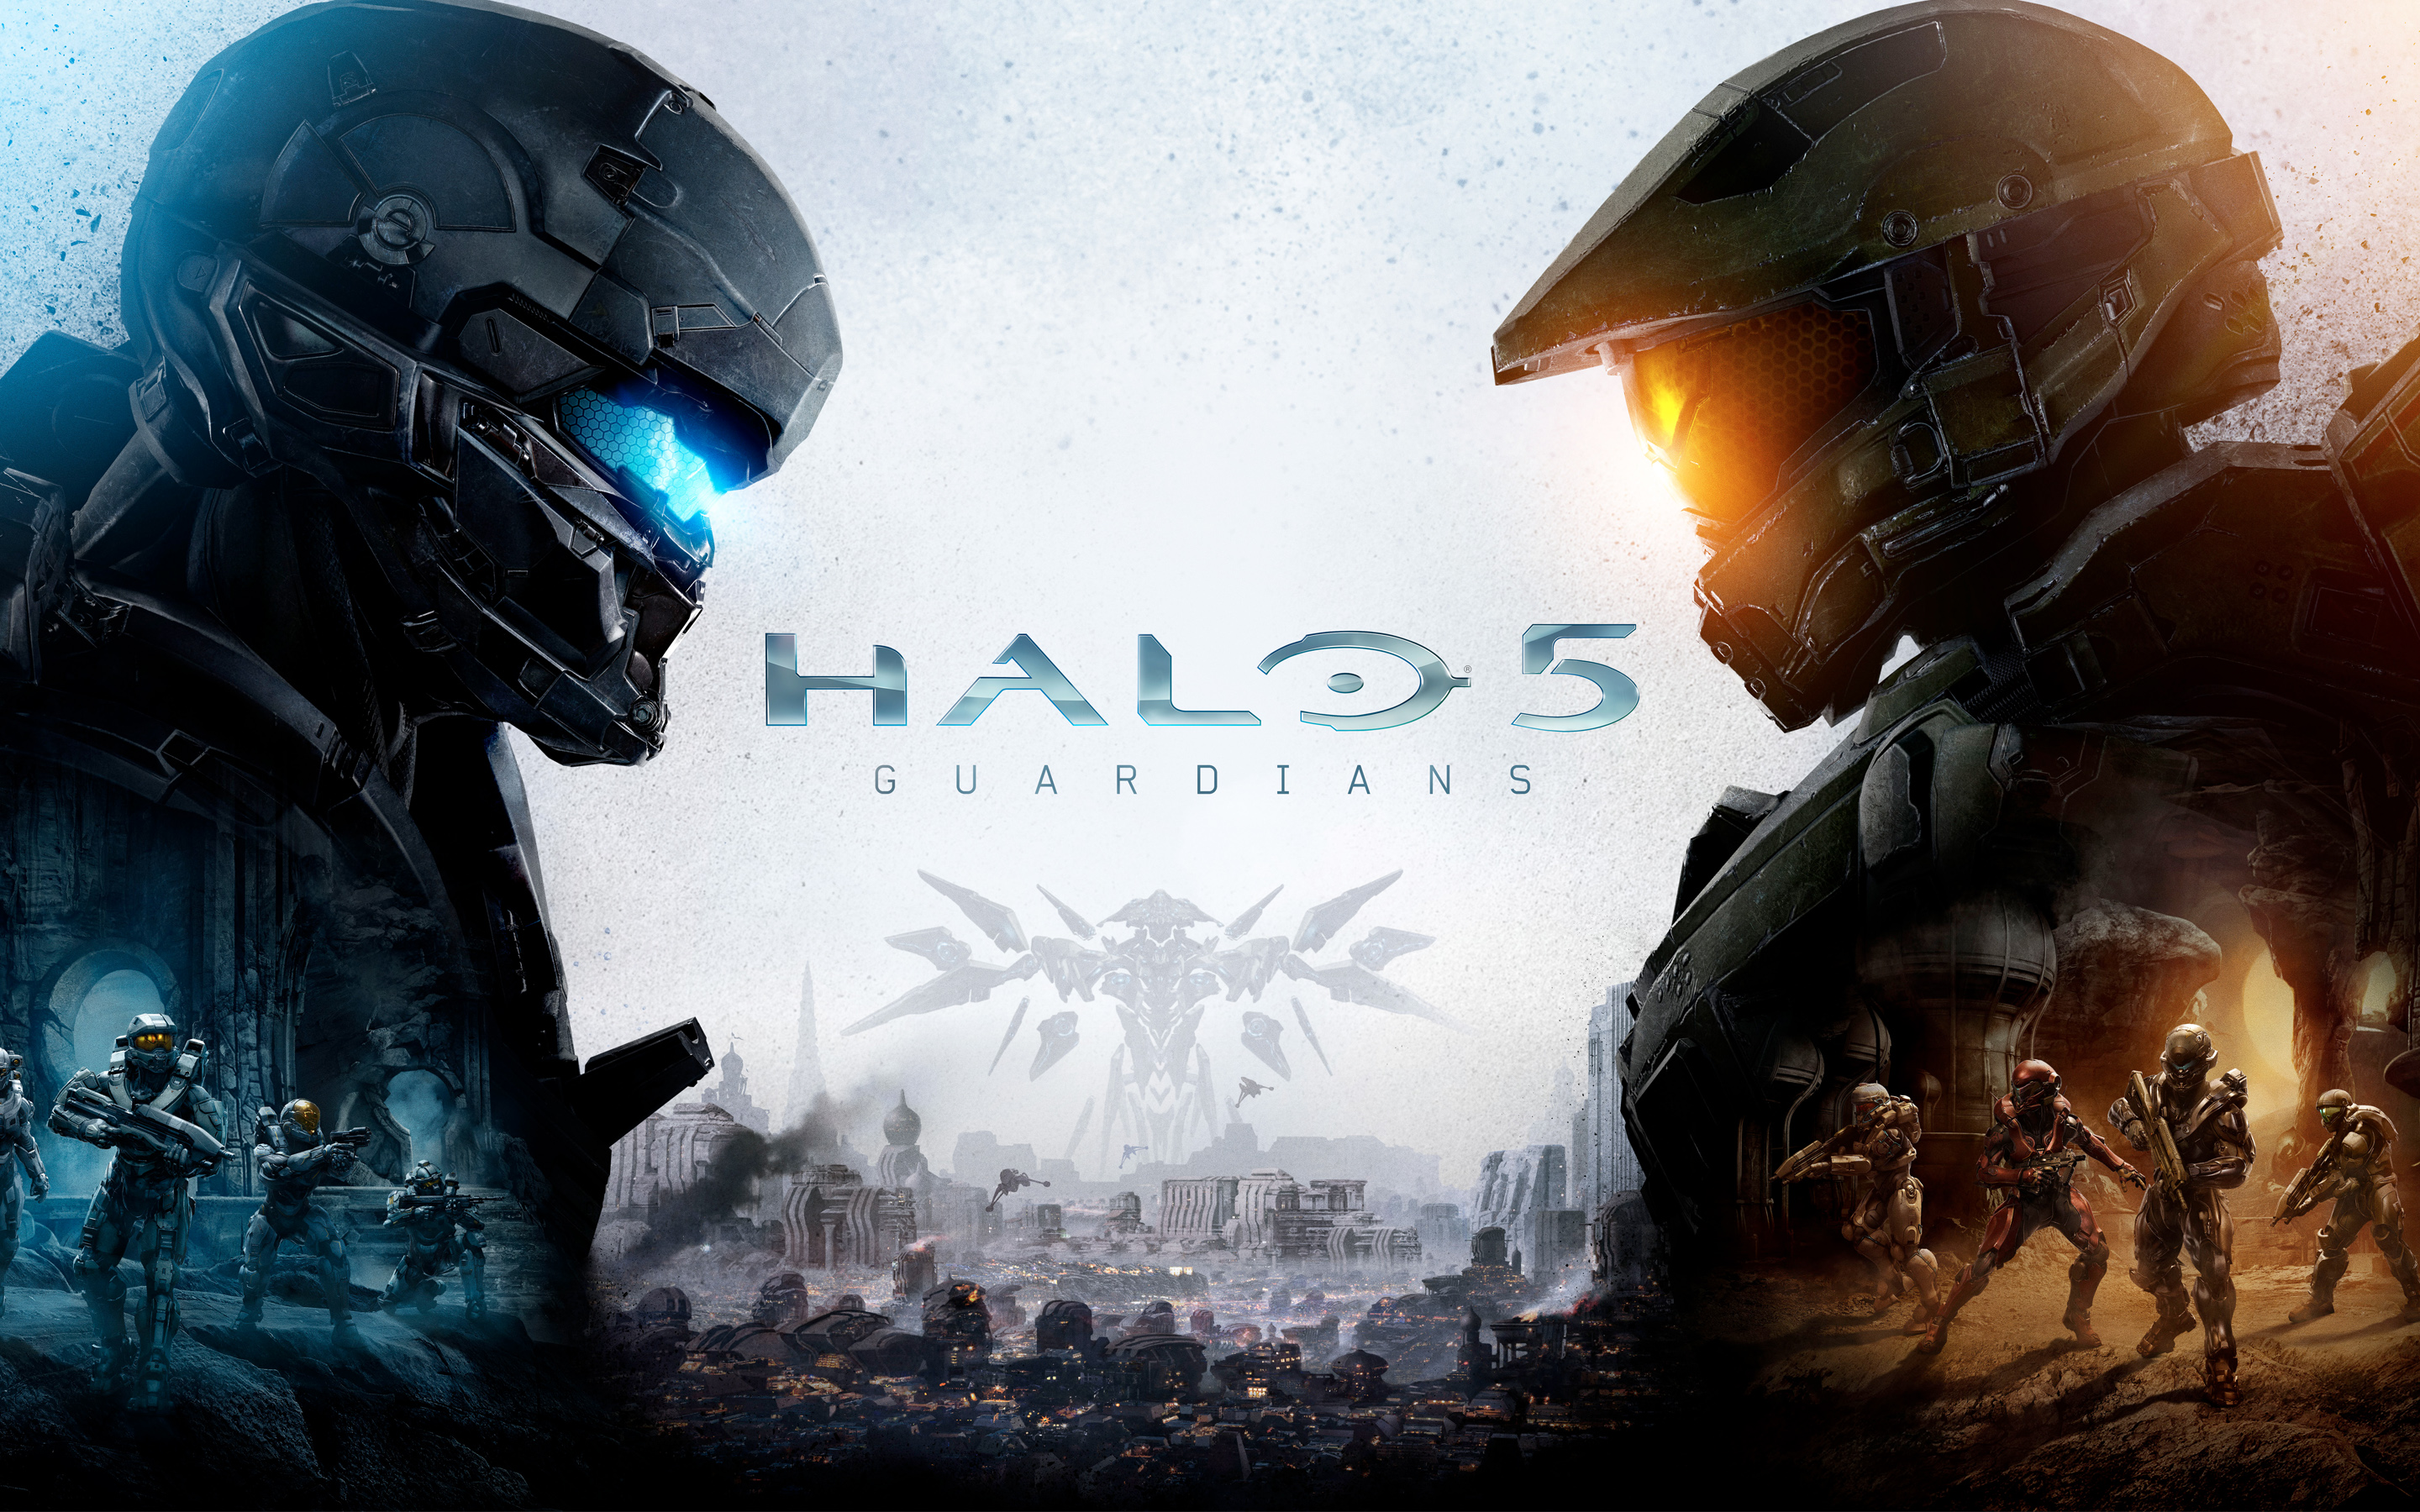 Halo 5 Guardians Wallpapers HD Wallpapers 2880x1800